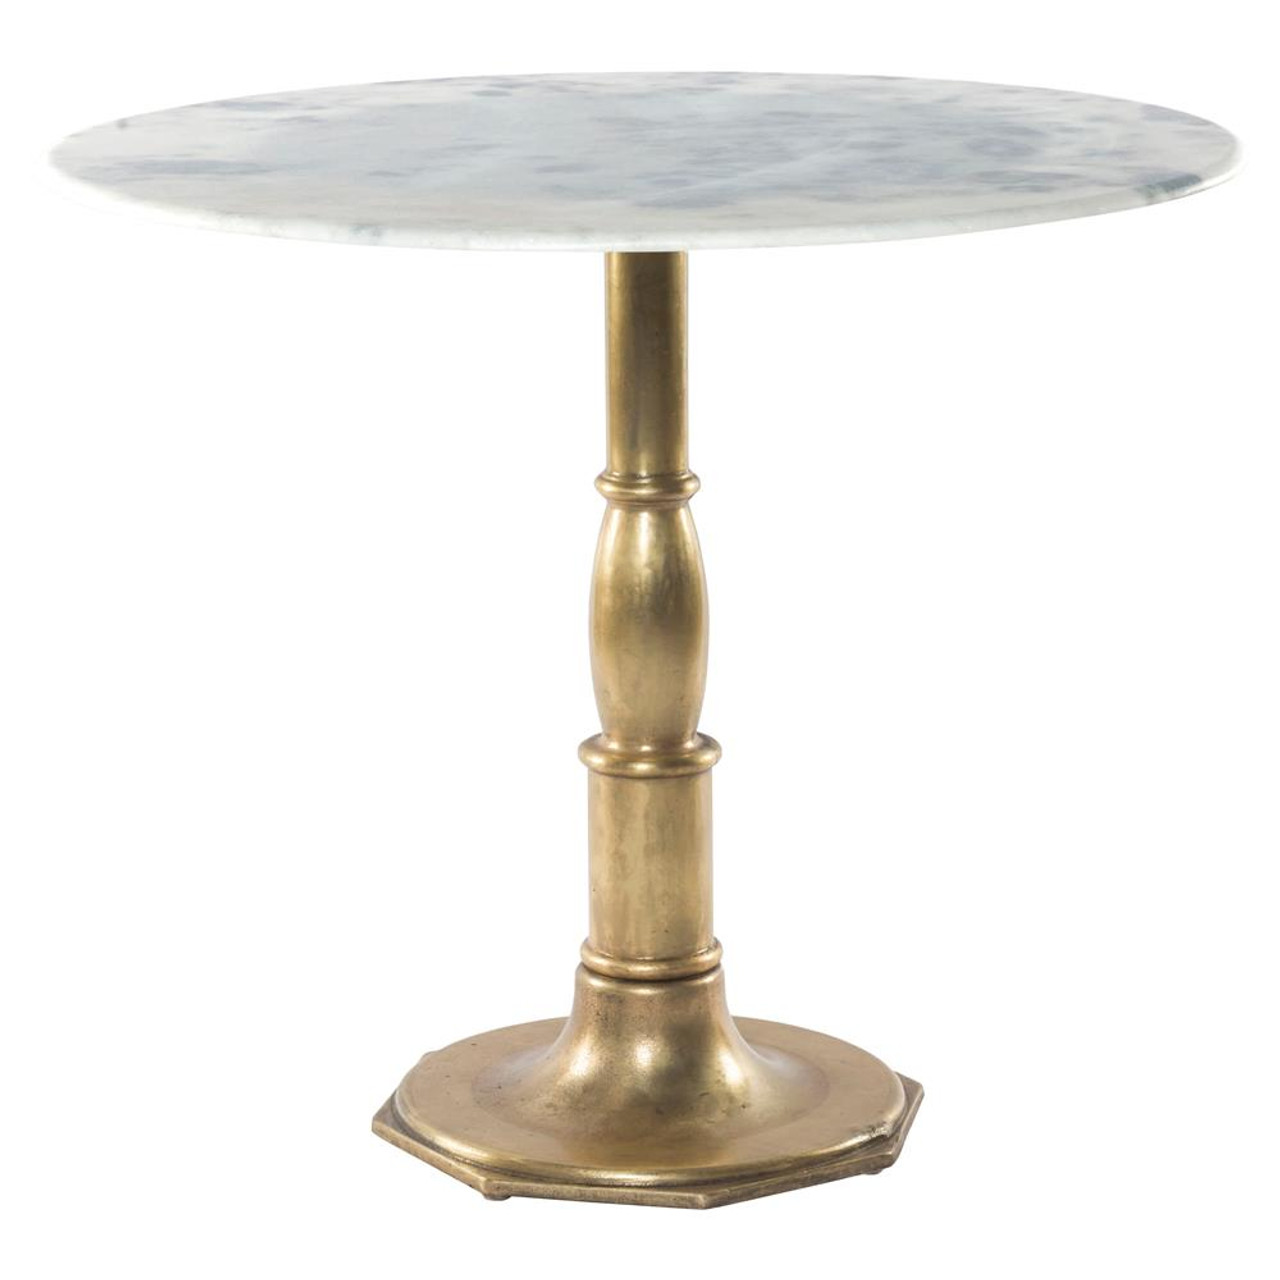 French Bistro White Marble + Brass Pedestal Round Table 36